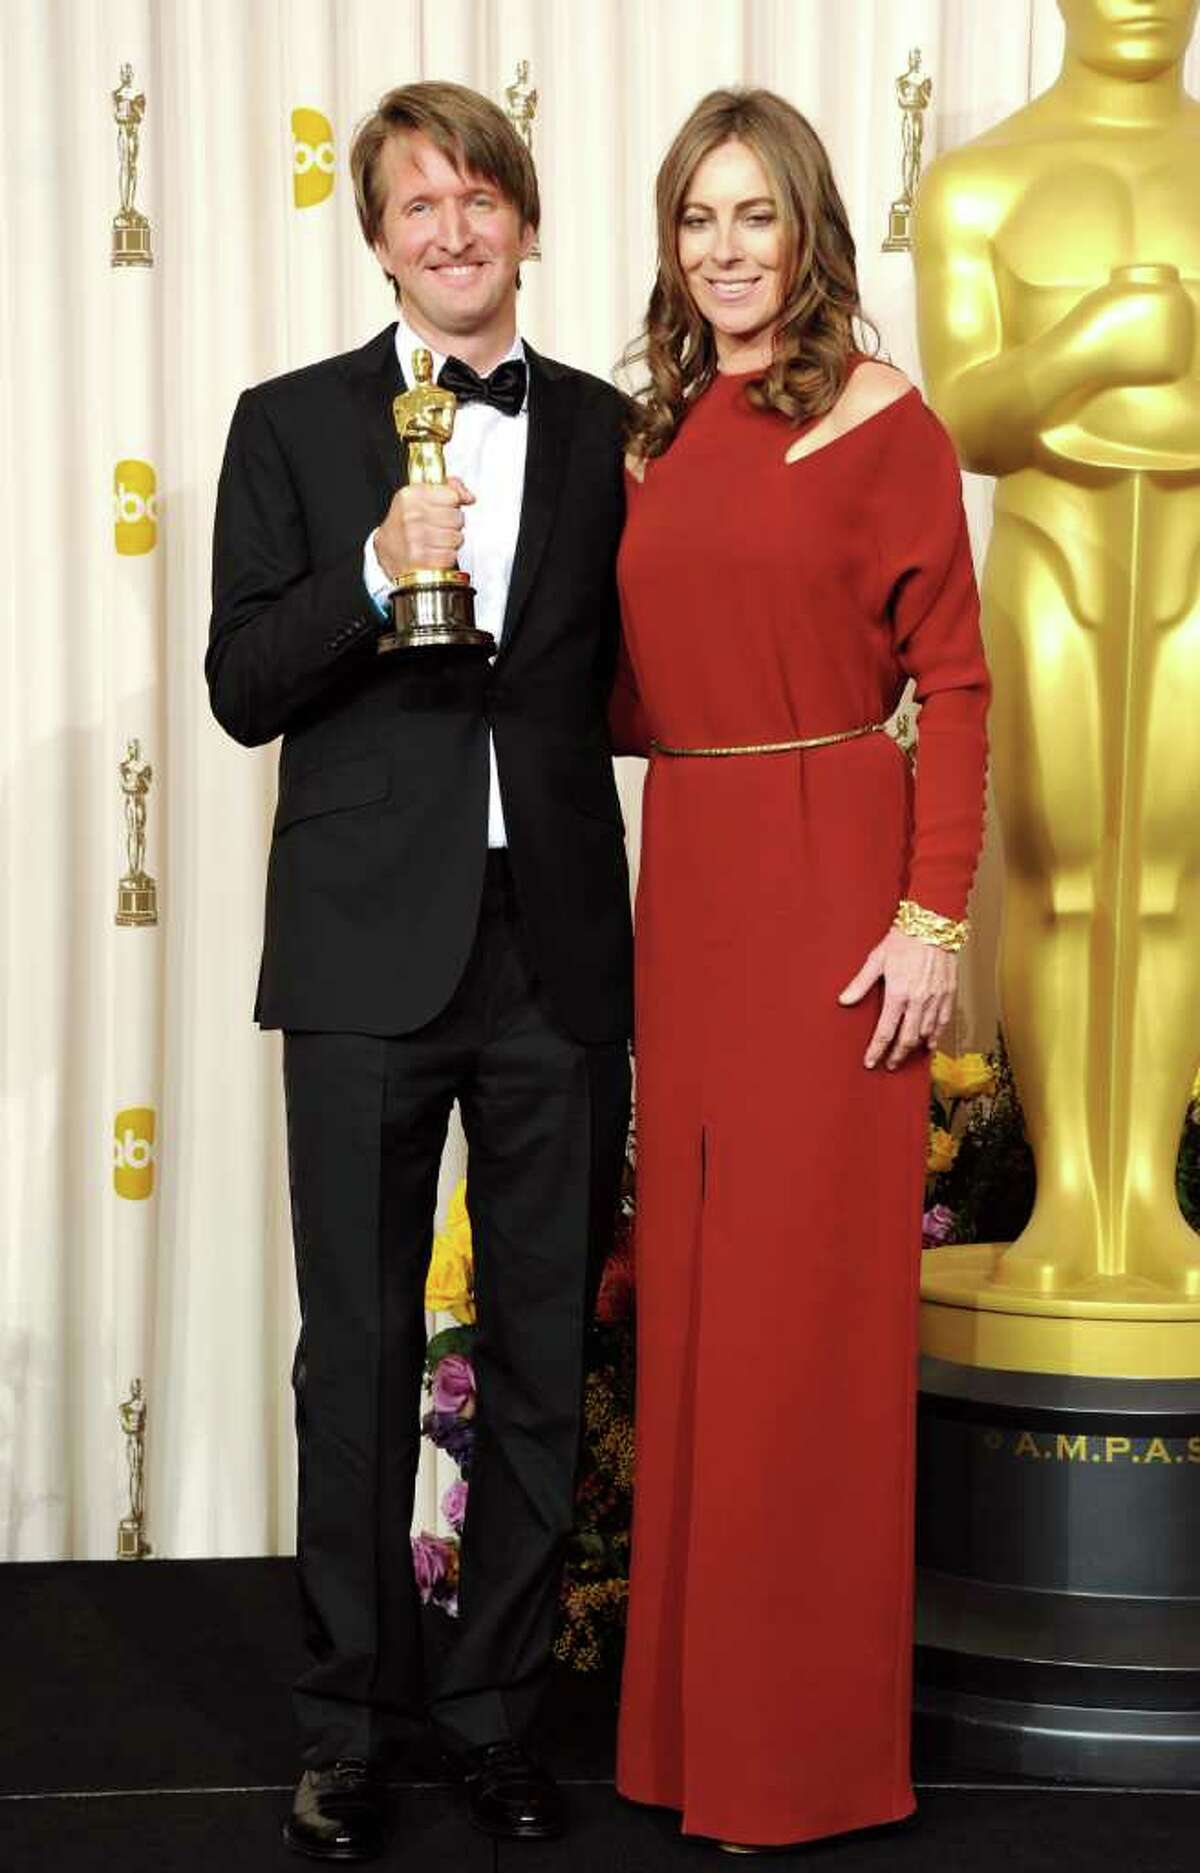 HOLLYWOOD, CA - FEBRUARY 27: Director Tom Hooper (L), winner of the award for Best Achievement in Directing for 'The King's Speech', and presenter Kathryn Bigelow pose in the press room during the 83rd Annual Academy Awards held at the Kodak Theatre on February 27, 2011 in Hollywood, California. (Photo by Jason Merritt/Getty Images) *** Local Caption *** Tom Hooper;Kathryn Bigelow